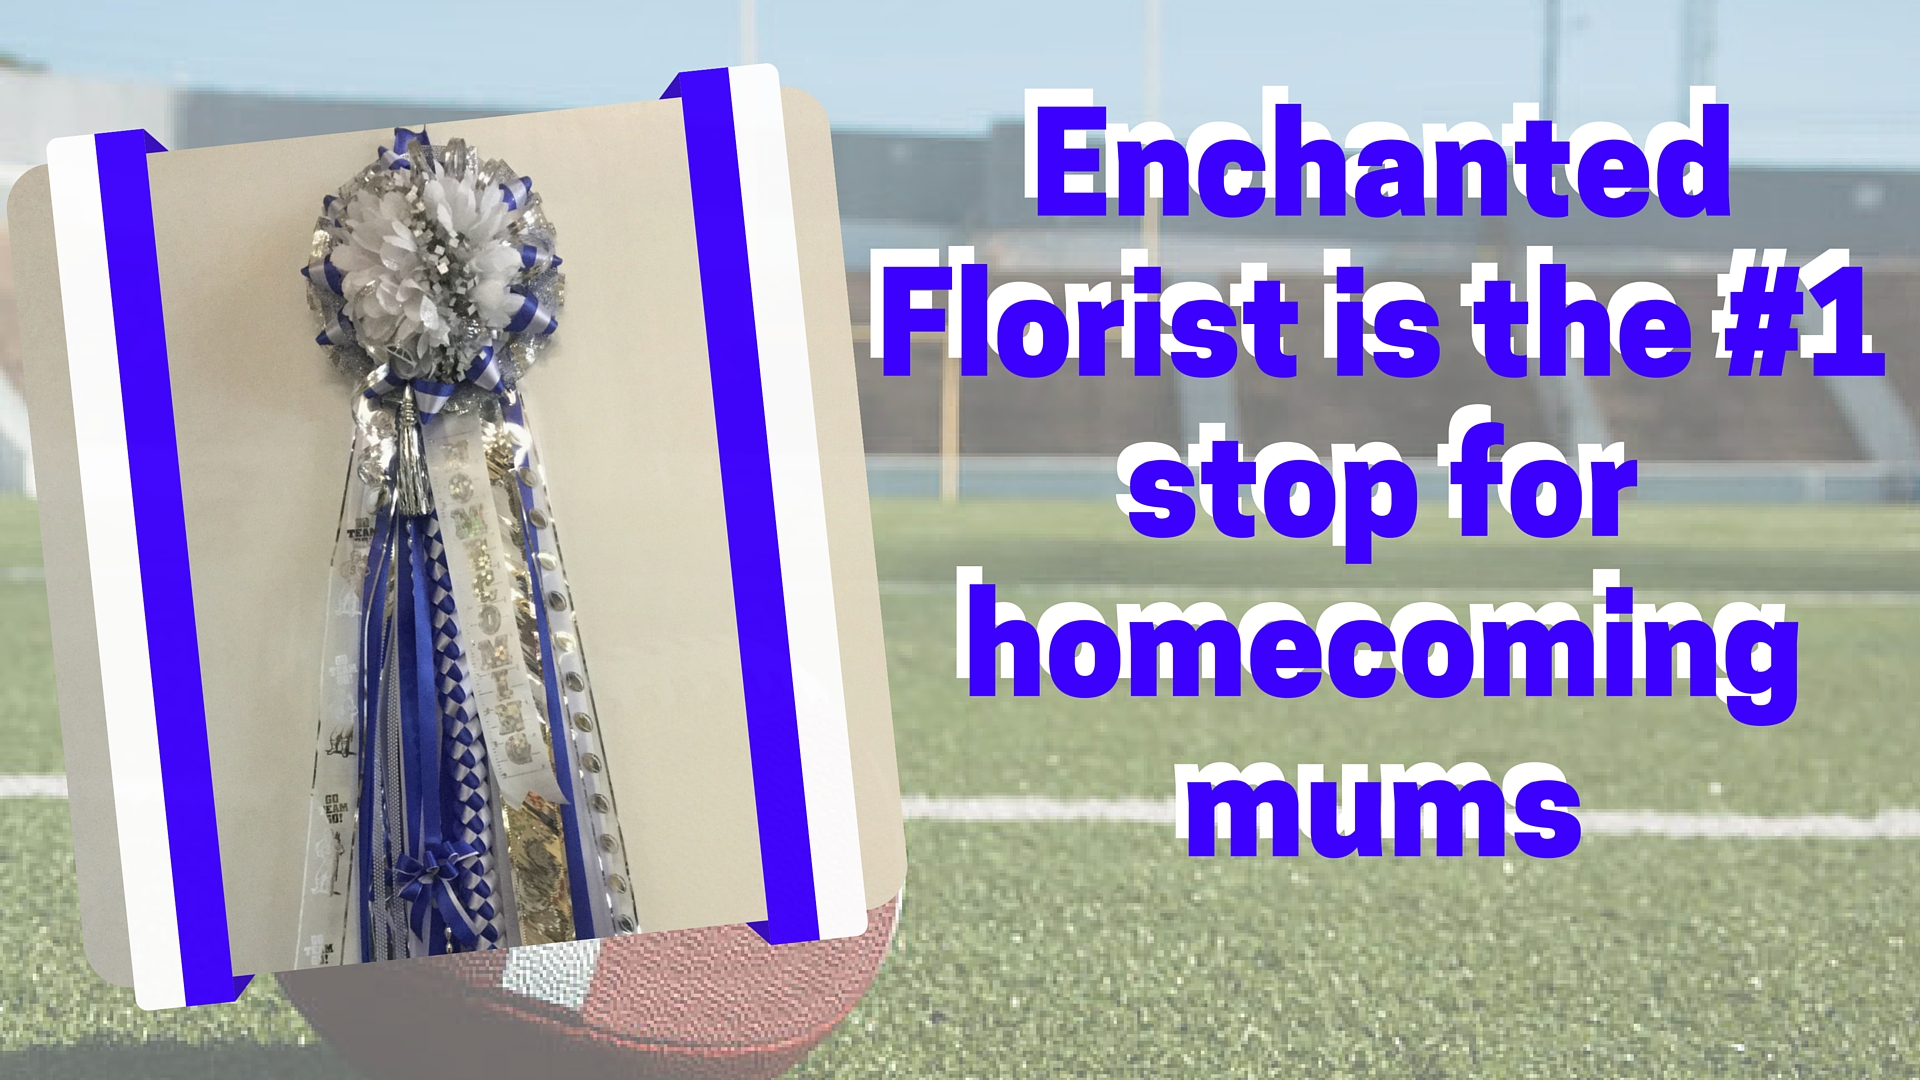 Chavez high school homecoming mum